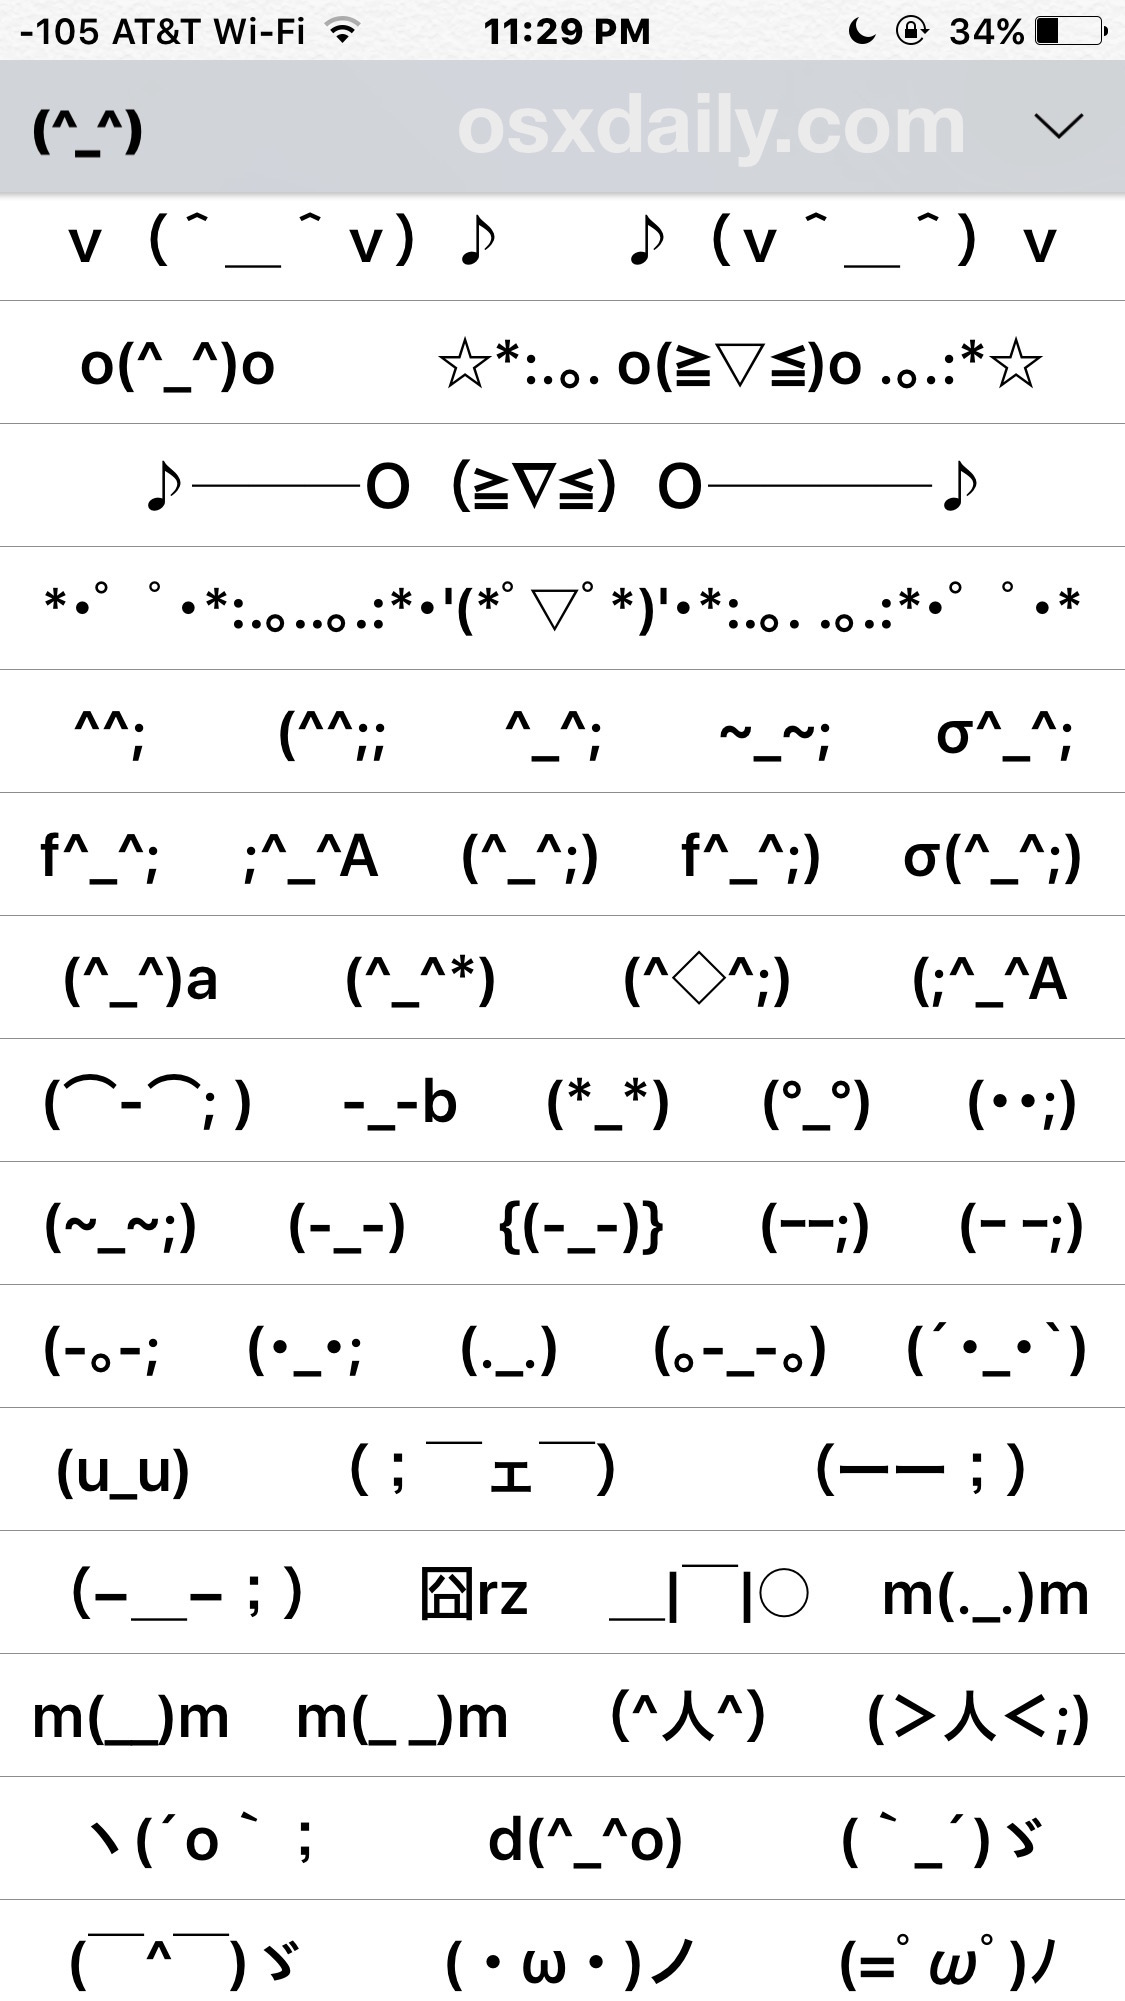 Emoticon keyboard on iPhone